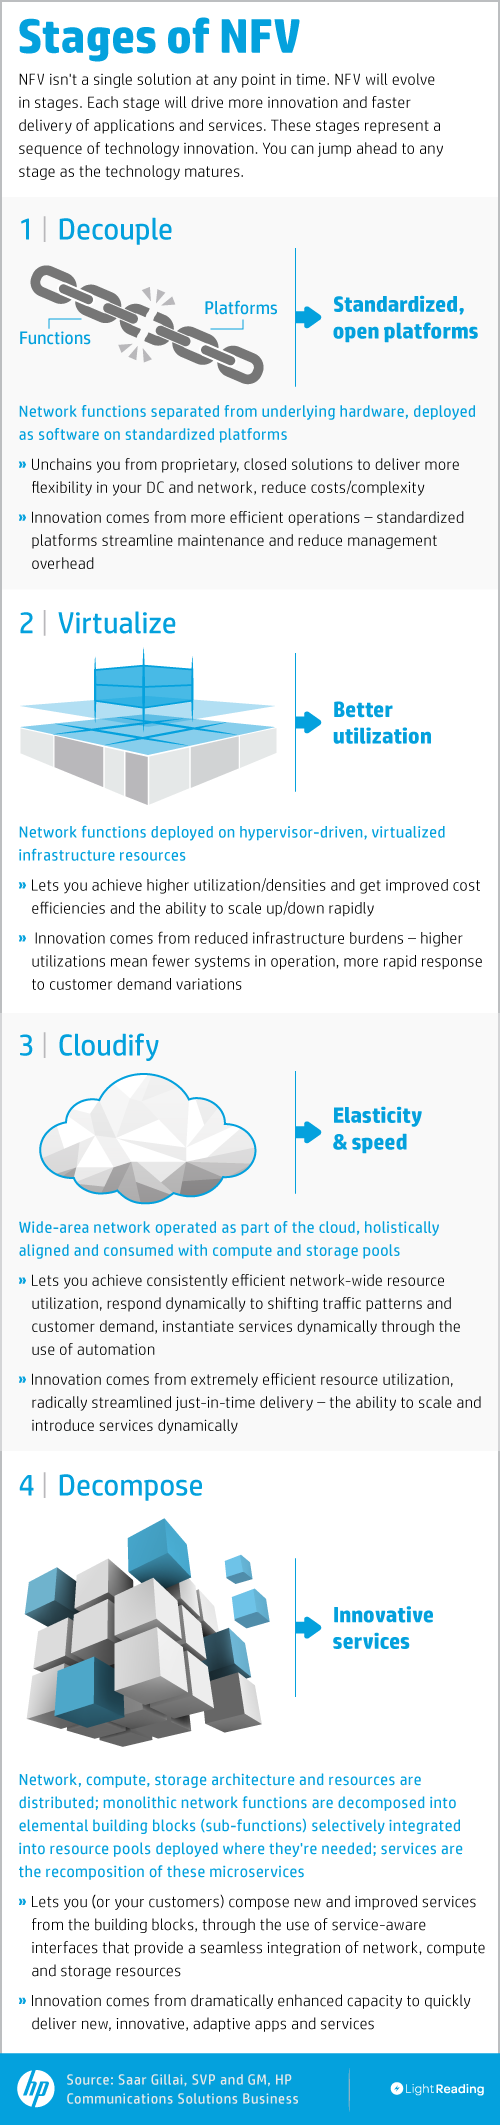 Stages-of-NFV-Infographic5.png